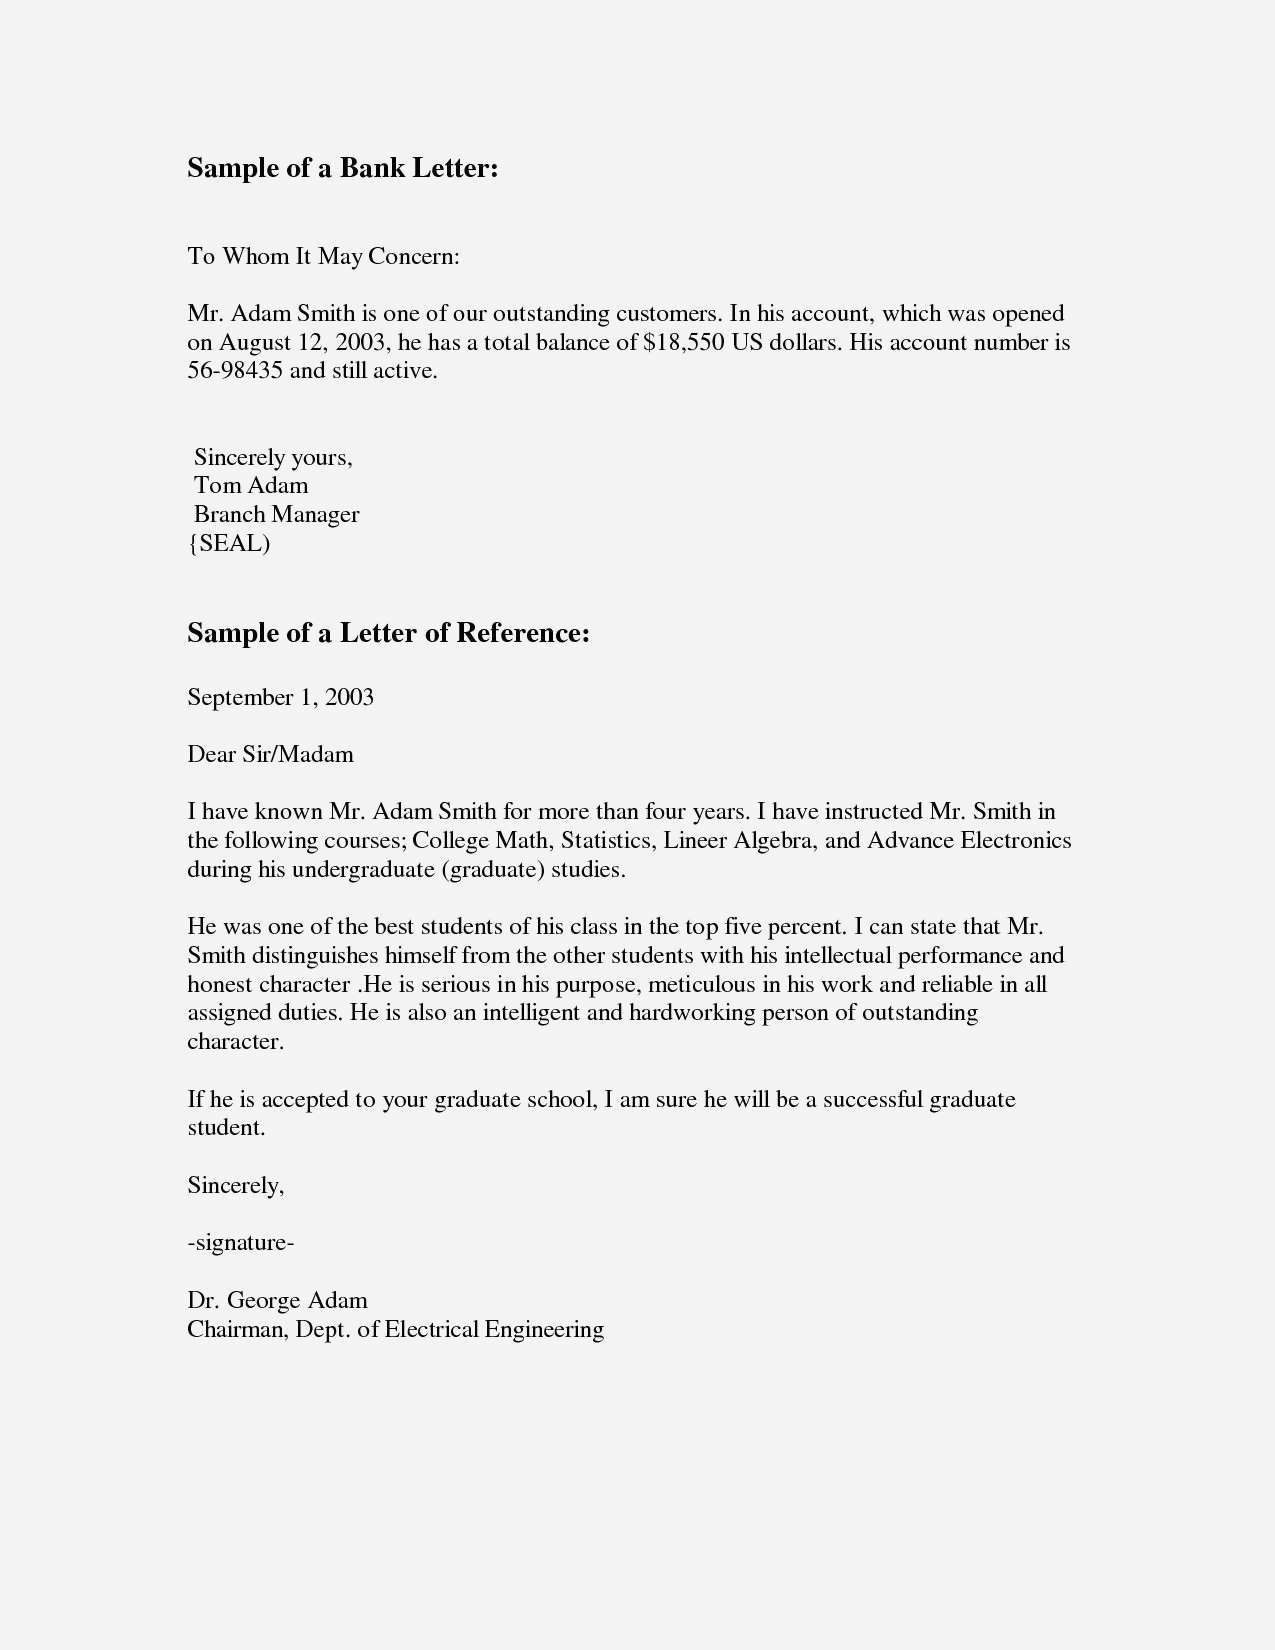 student letter of recommendation template Collection-Fresh Student Letter Re mendation Template Formal Letter Template Unique bylaws Template 0d Wallpapers 50 ficial Letter Template 20-n